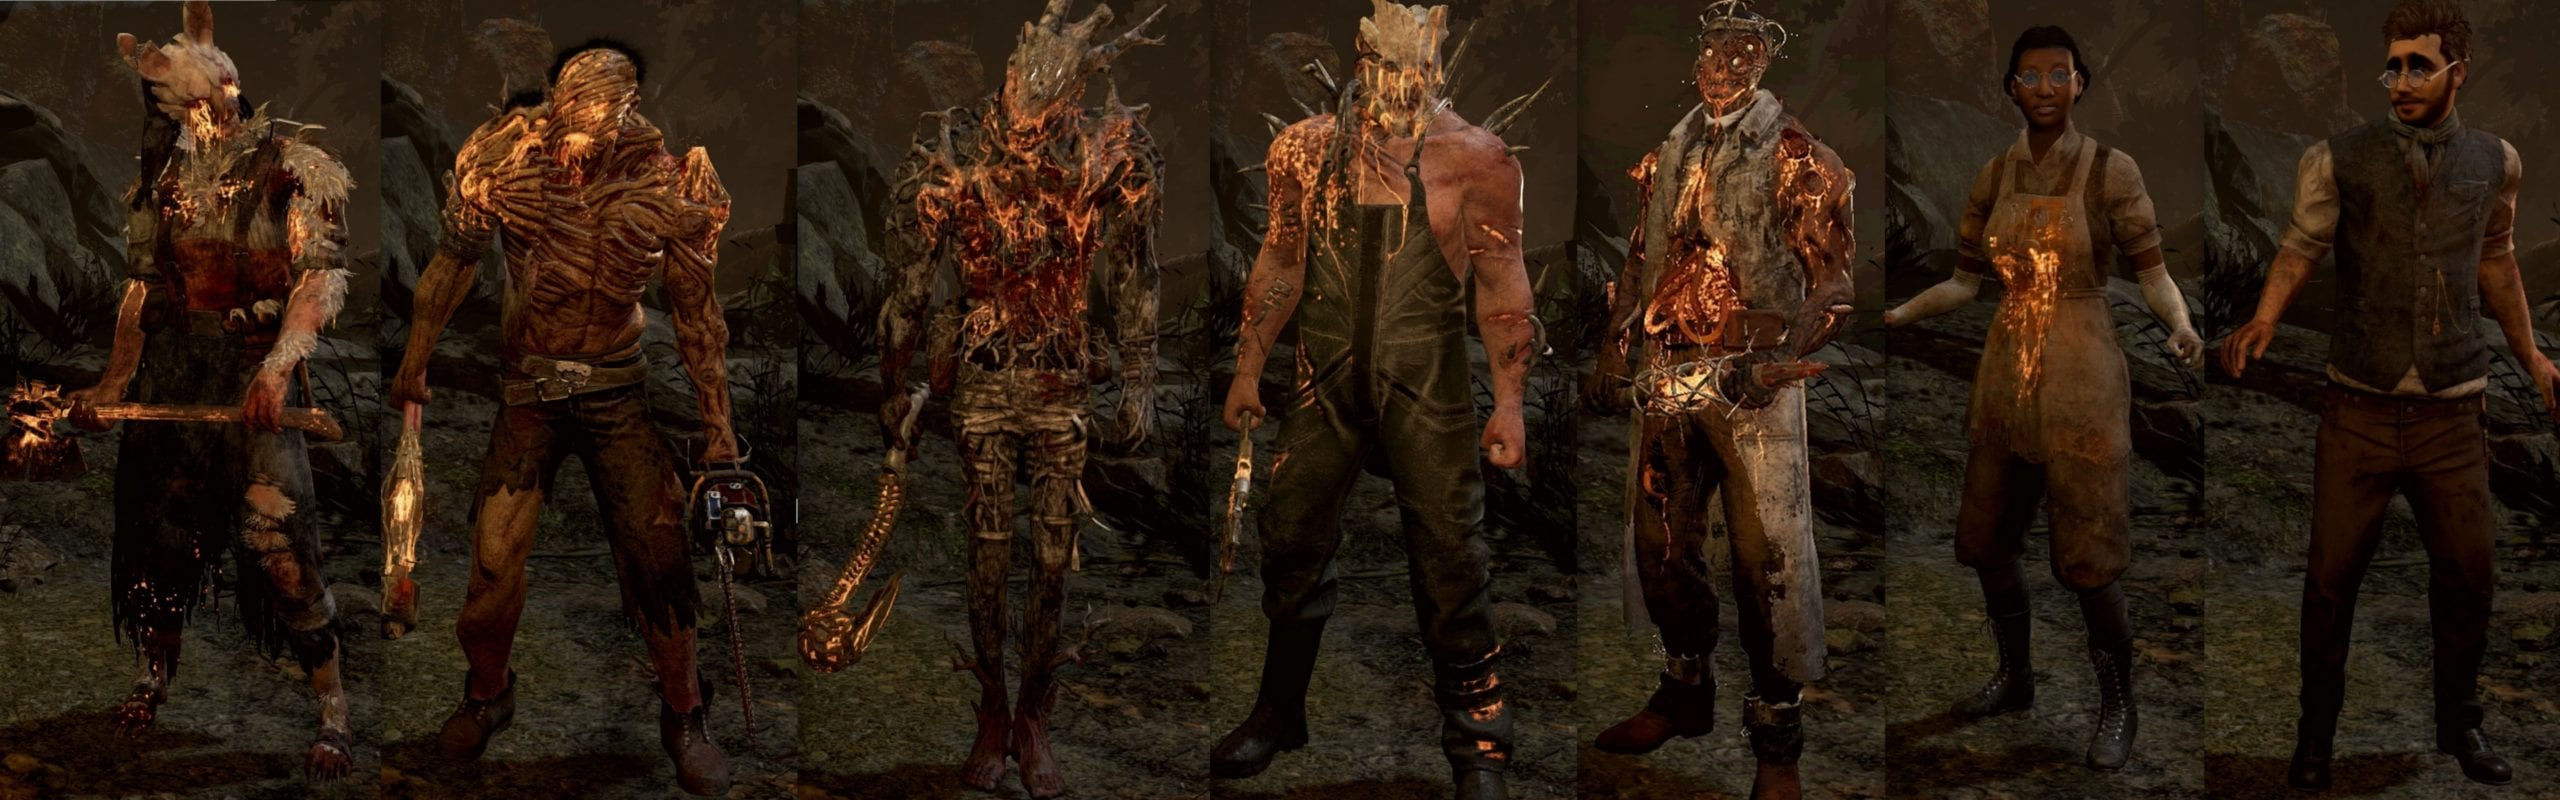 Dead by Daylight Blight Event